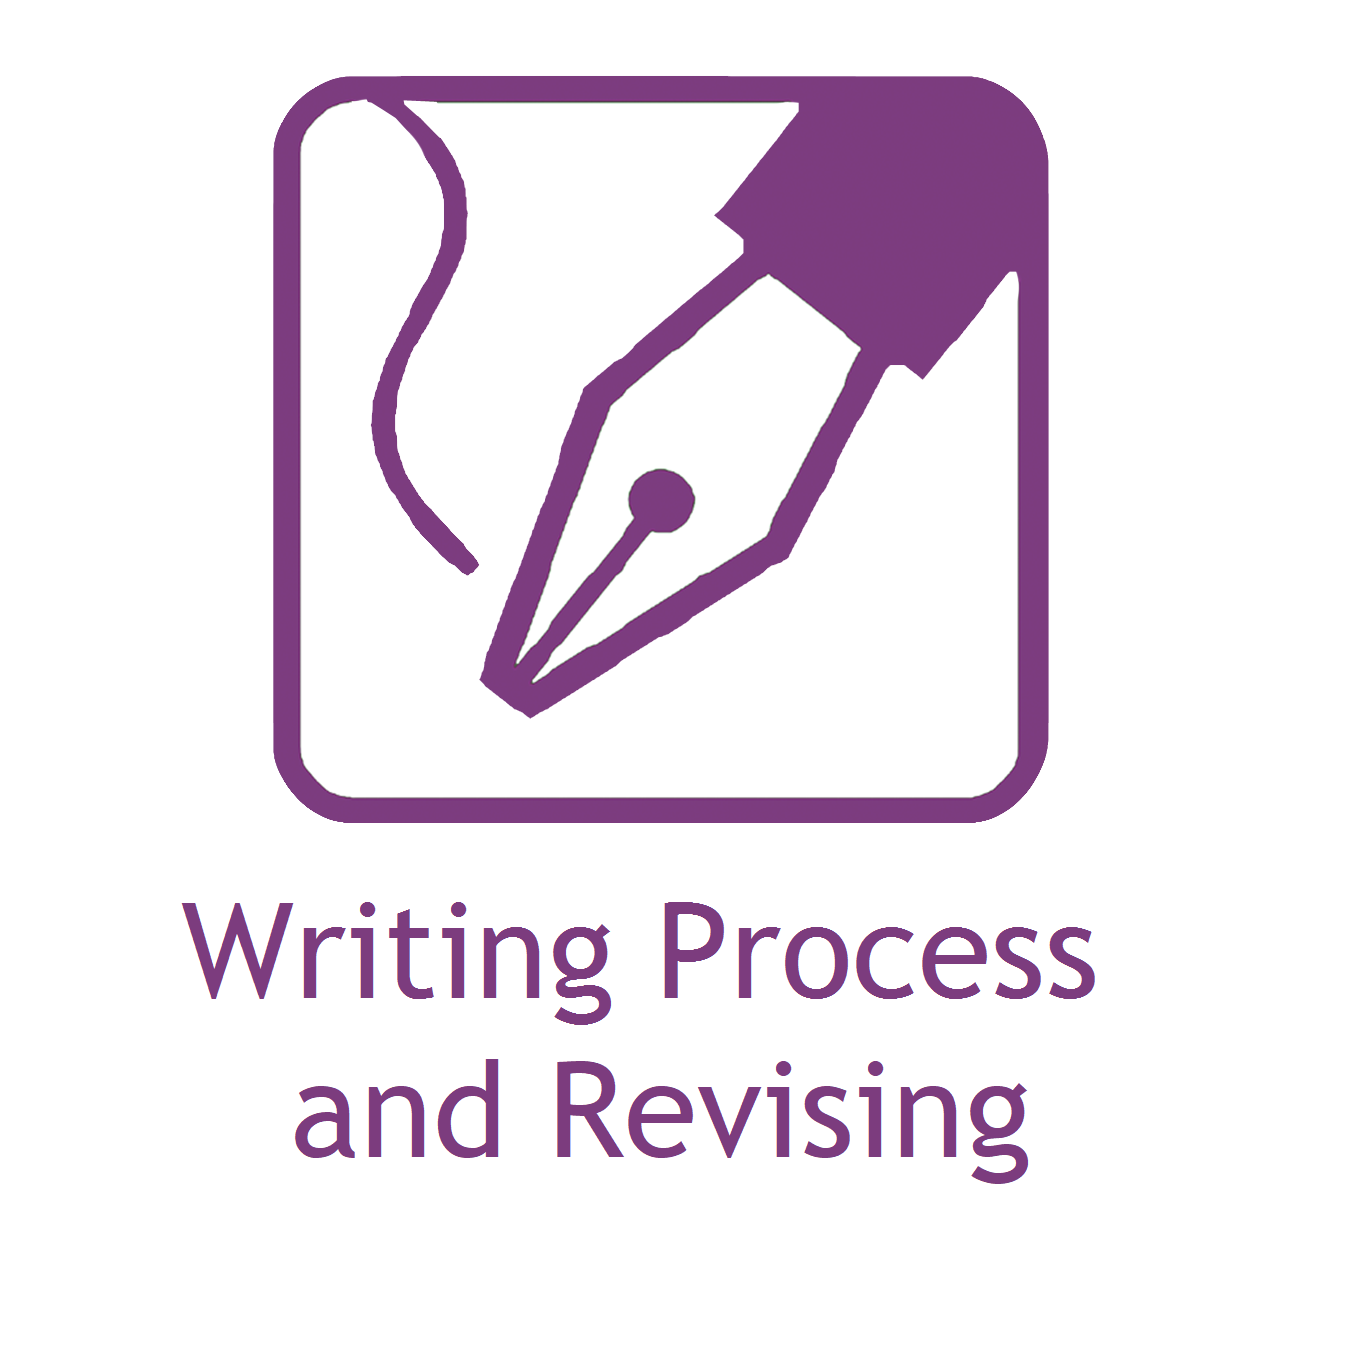 writing-process-revising